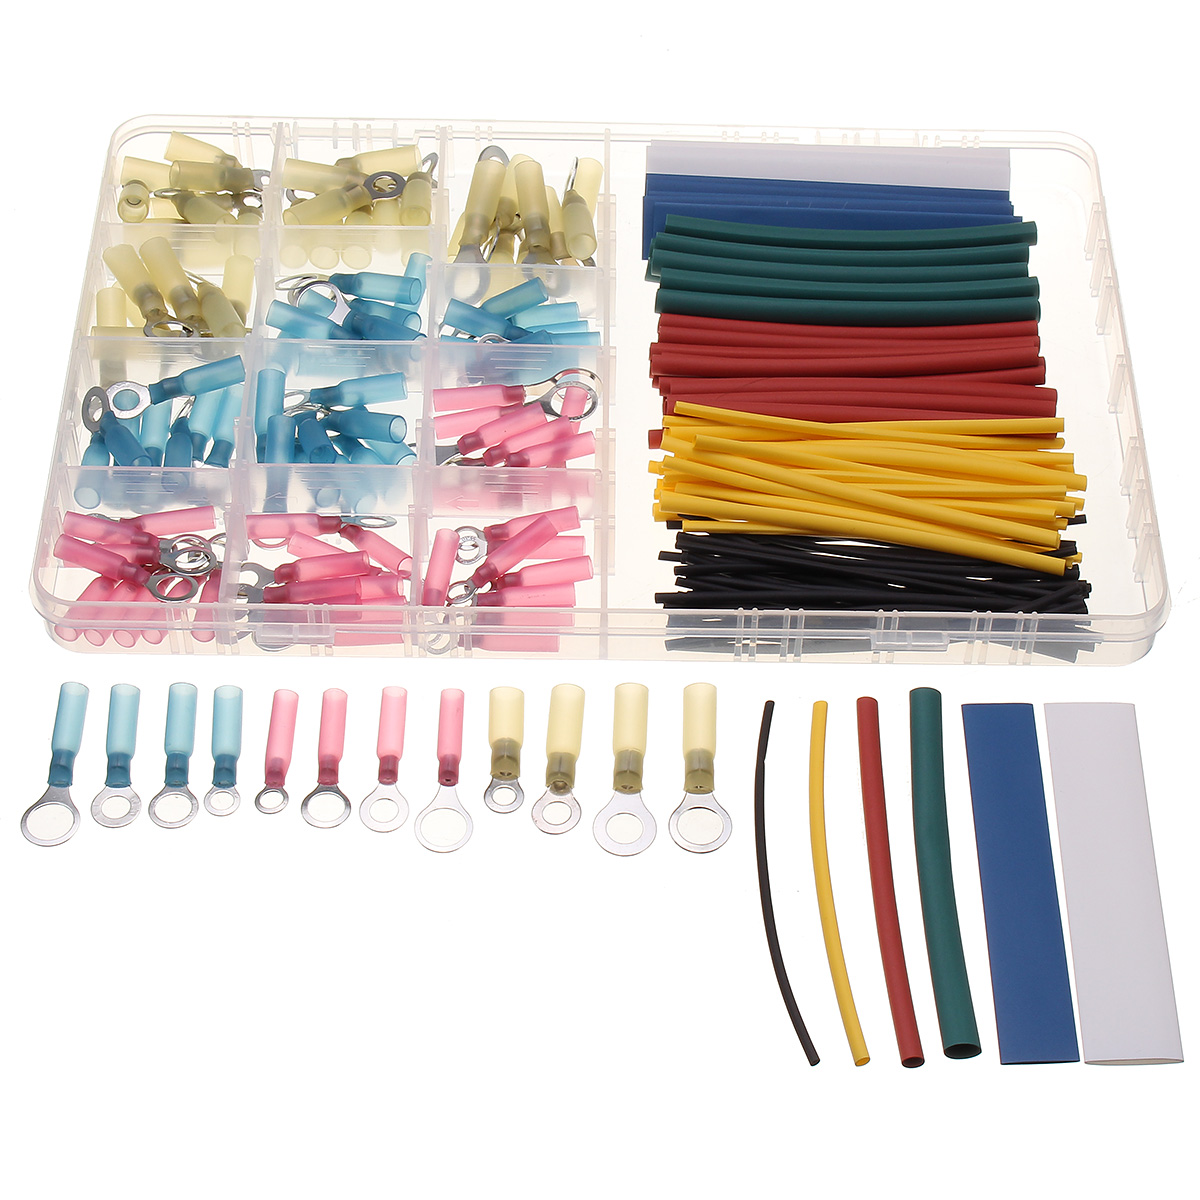 SOLOOP 220pcs Assorted Electrical Crimp Terminal Connector+Heat Ahrinkable Box Kit